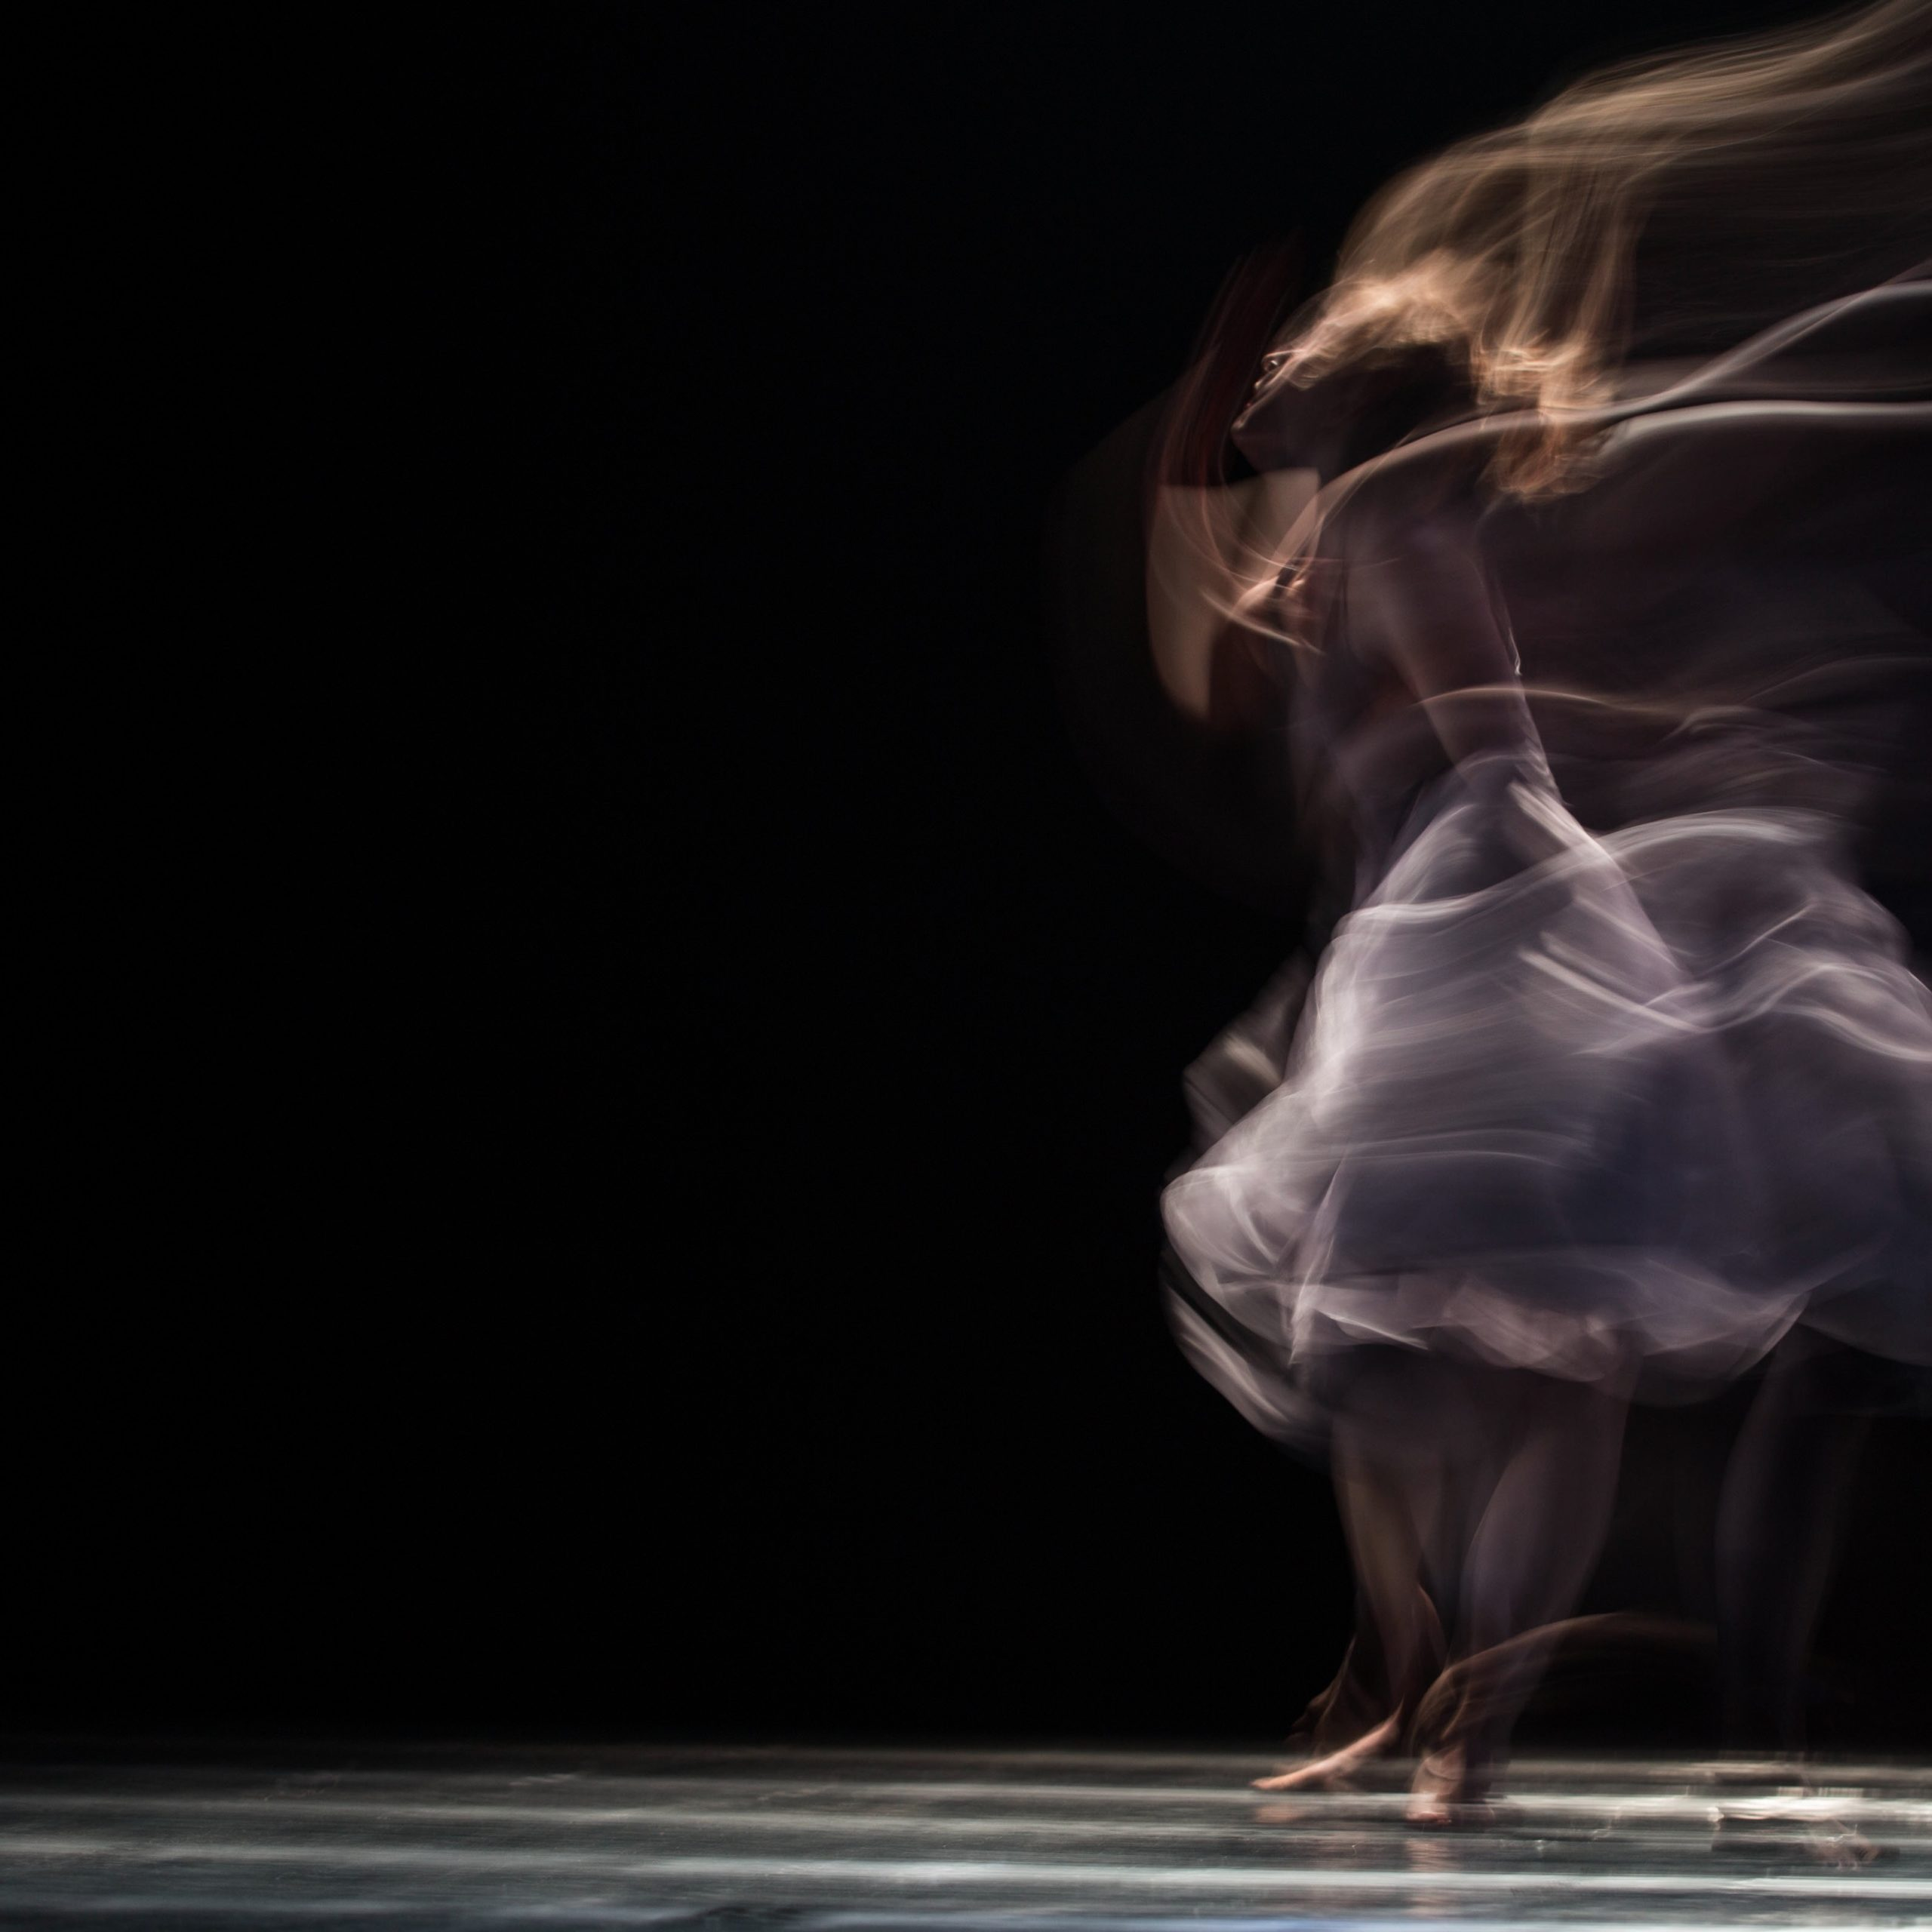 A dancer moves on a black empty stage, but her image is blurred, as if she